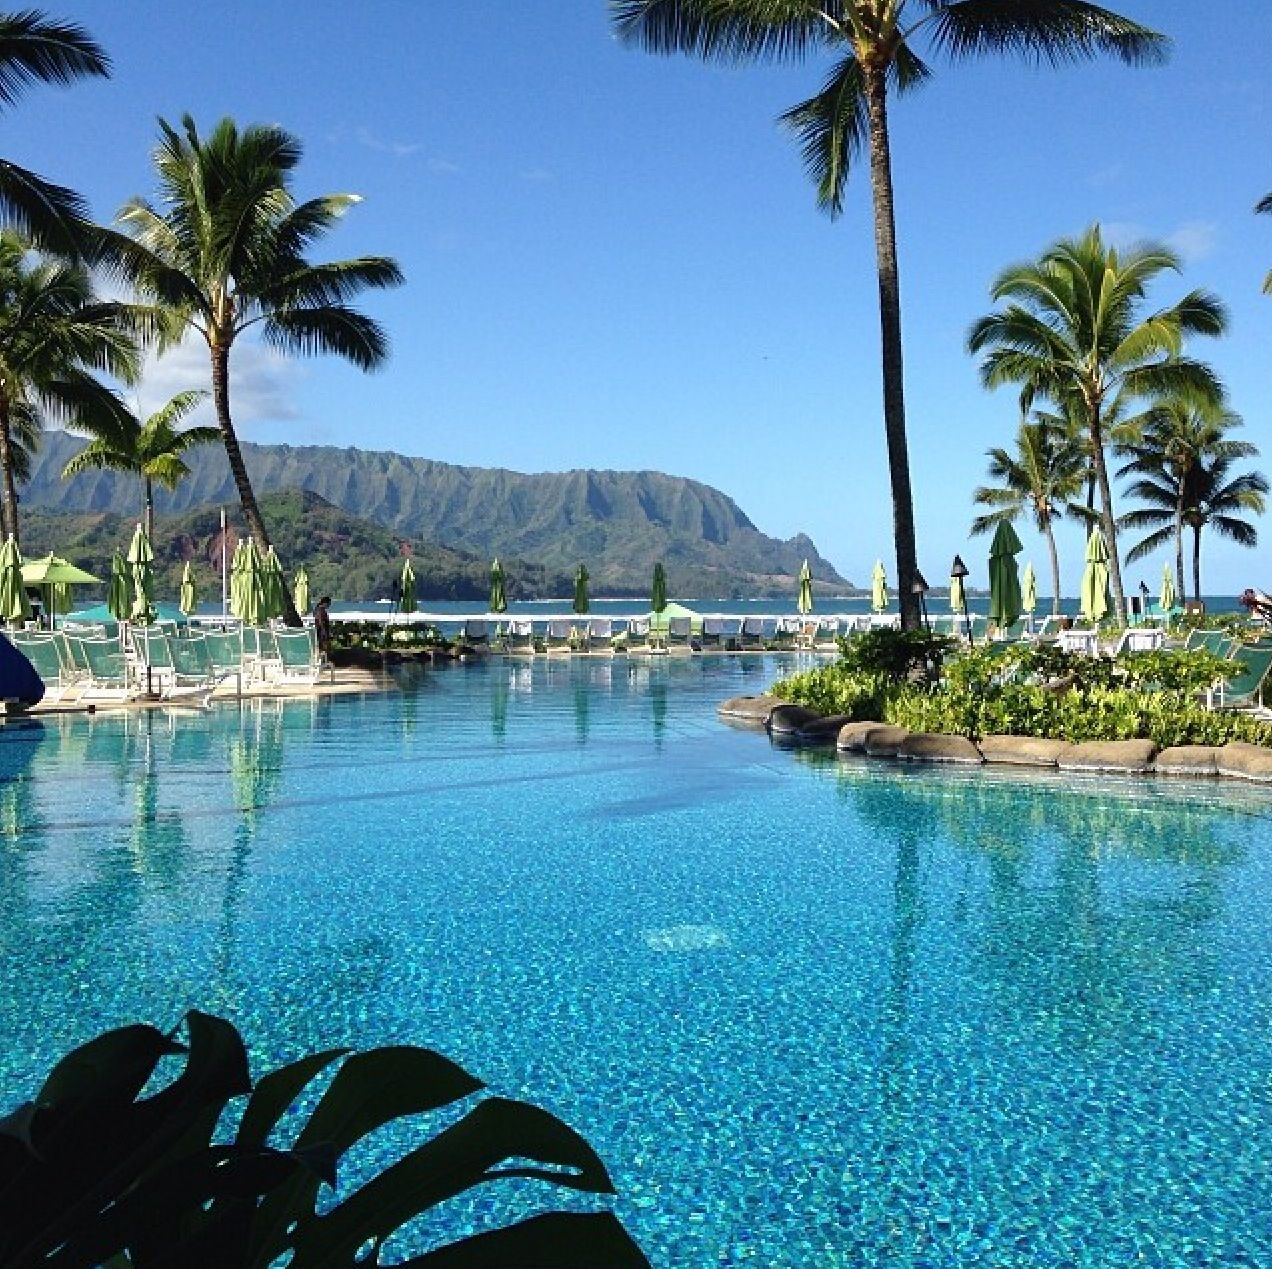 St Regis Princeville Resort, Kauai, Hawaii Hotels